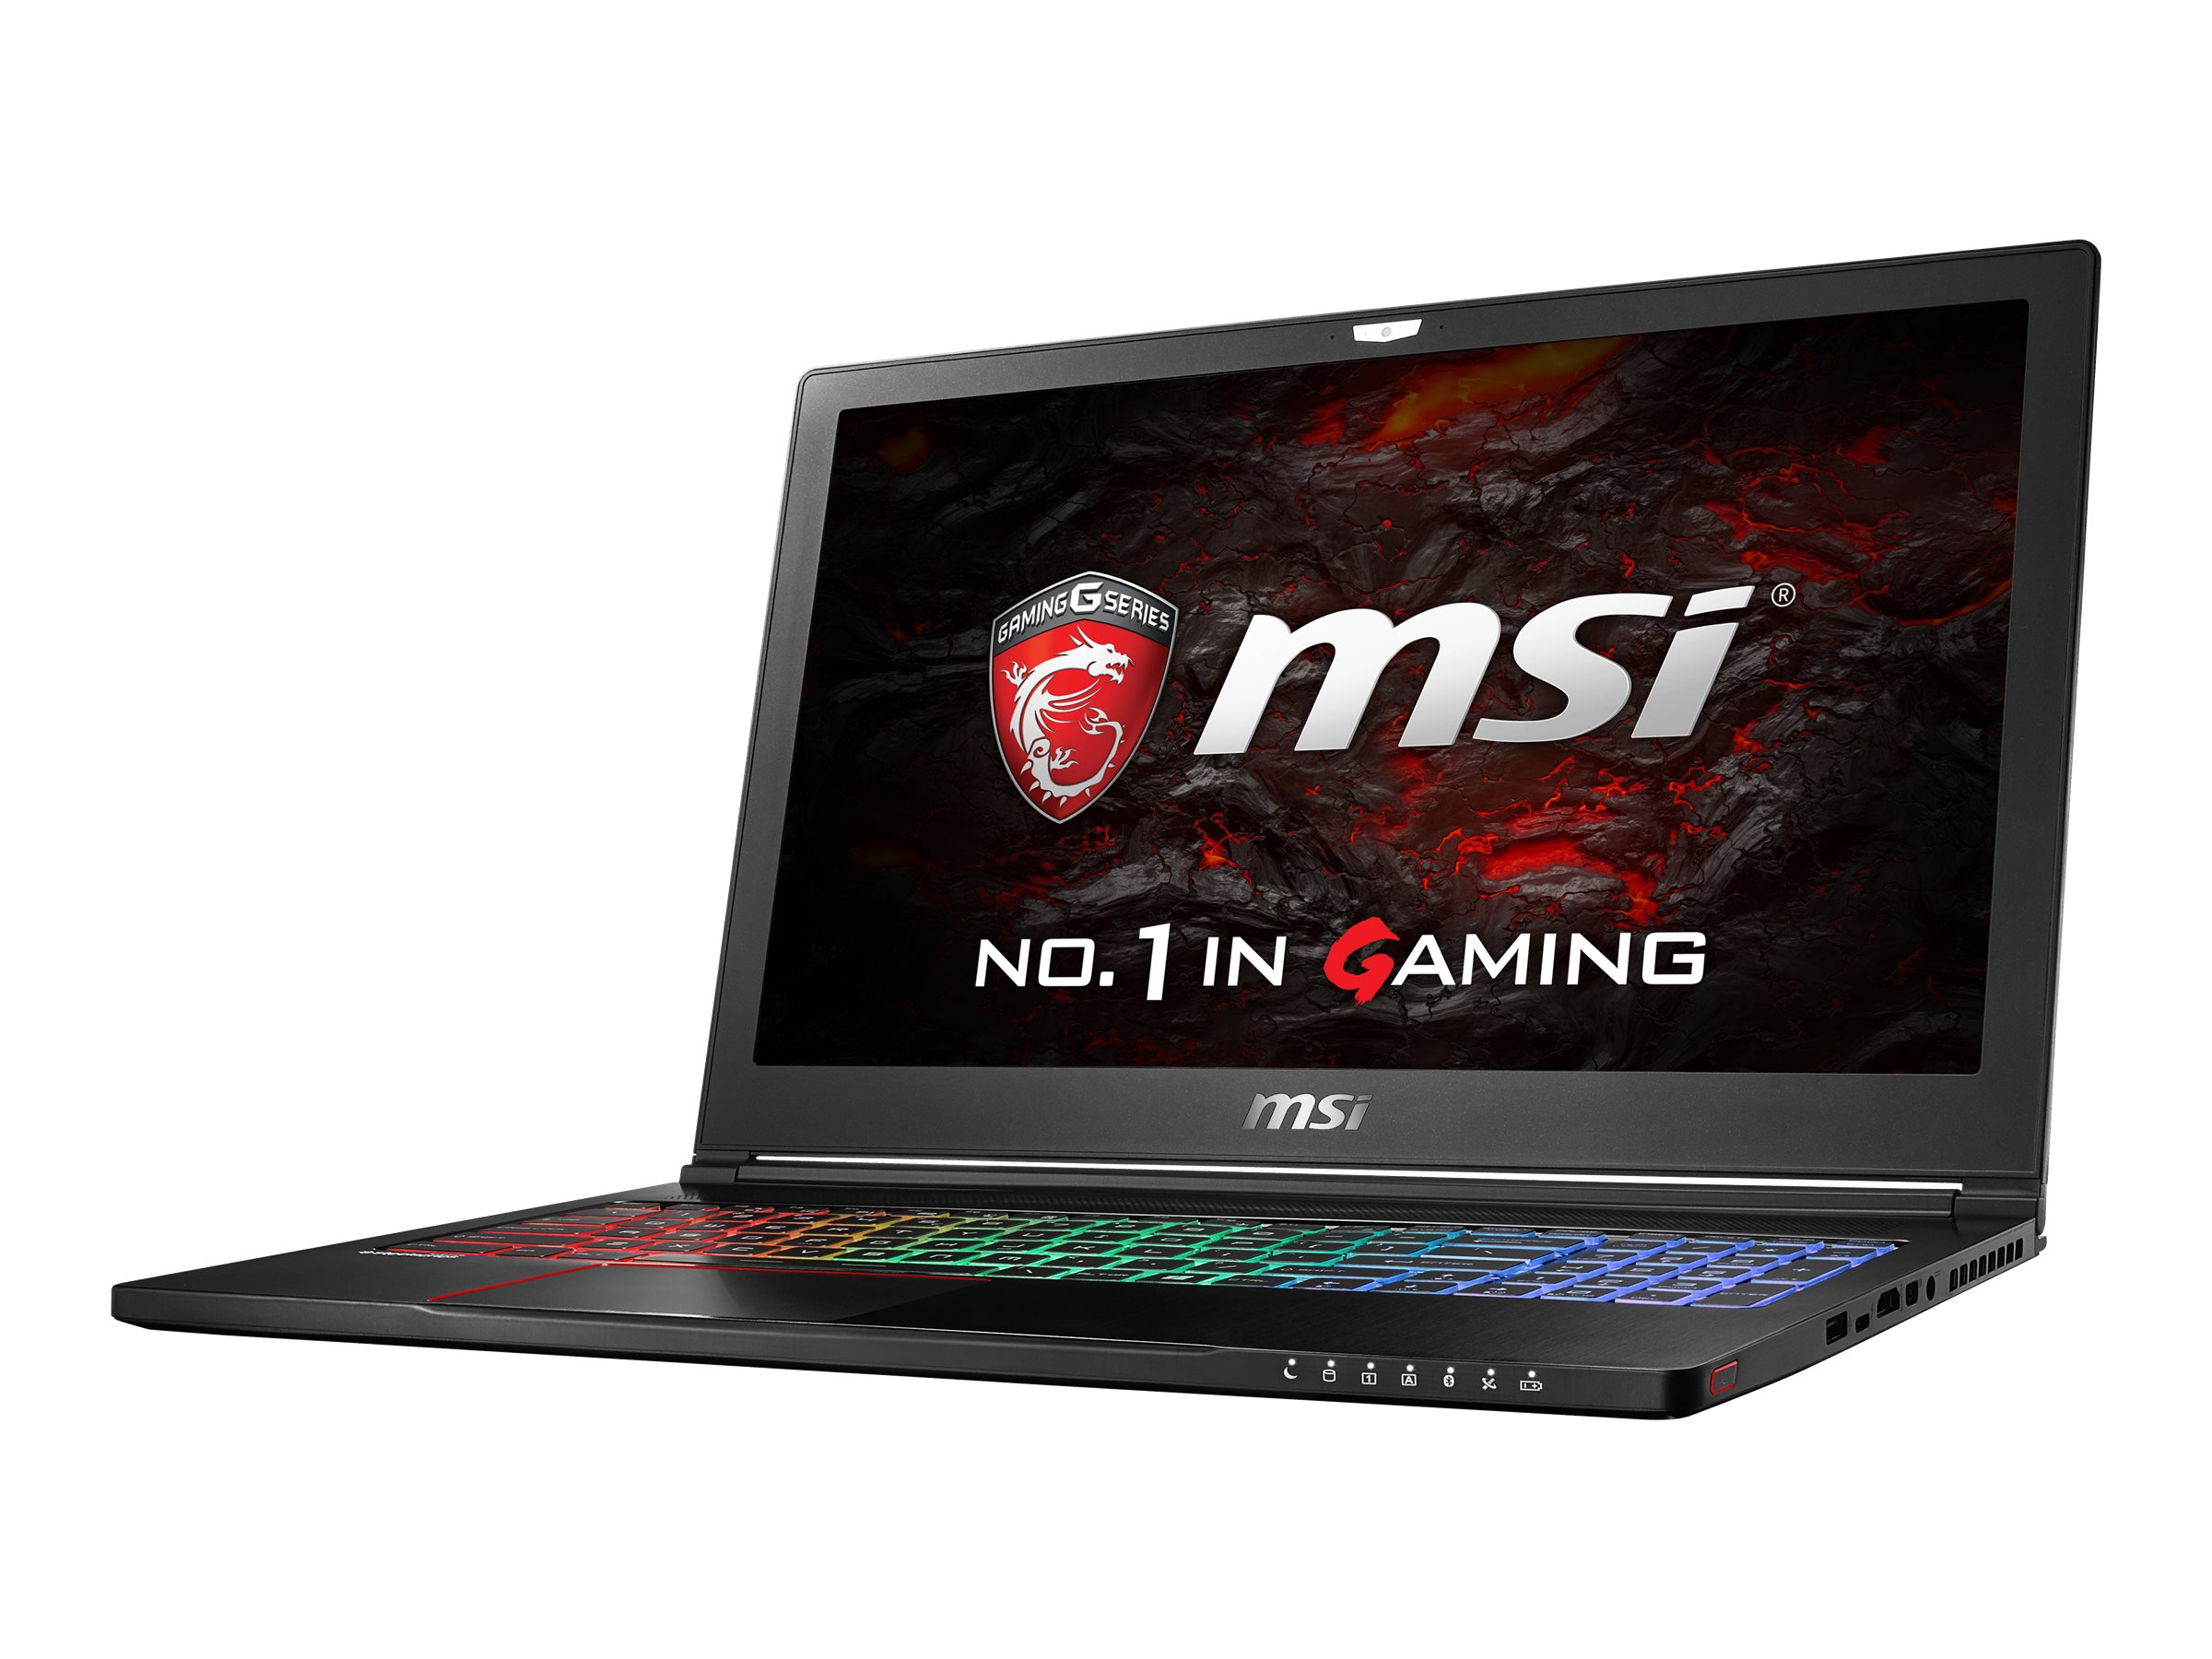 MSI GS63VR Stealth Pro 4K-021 Notebook PC